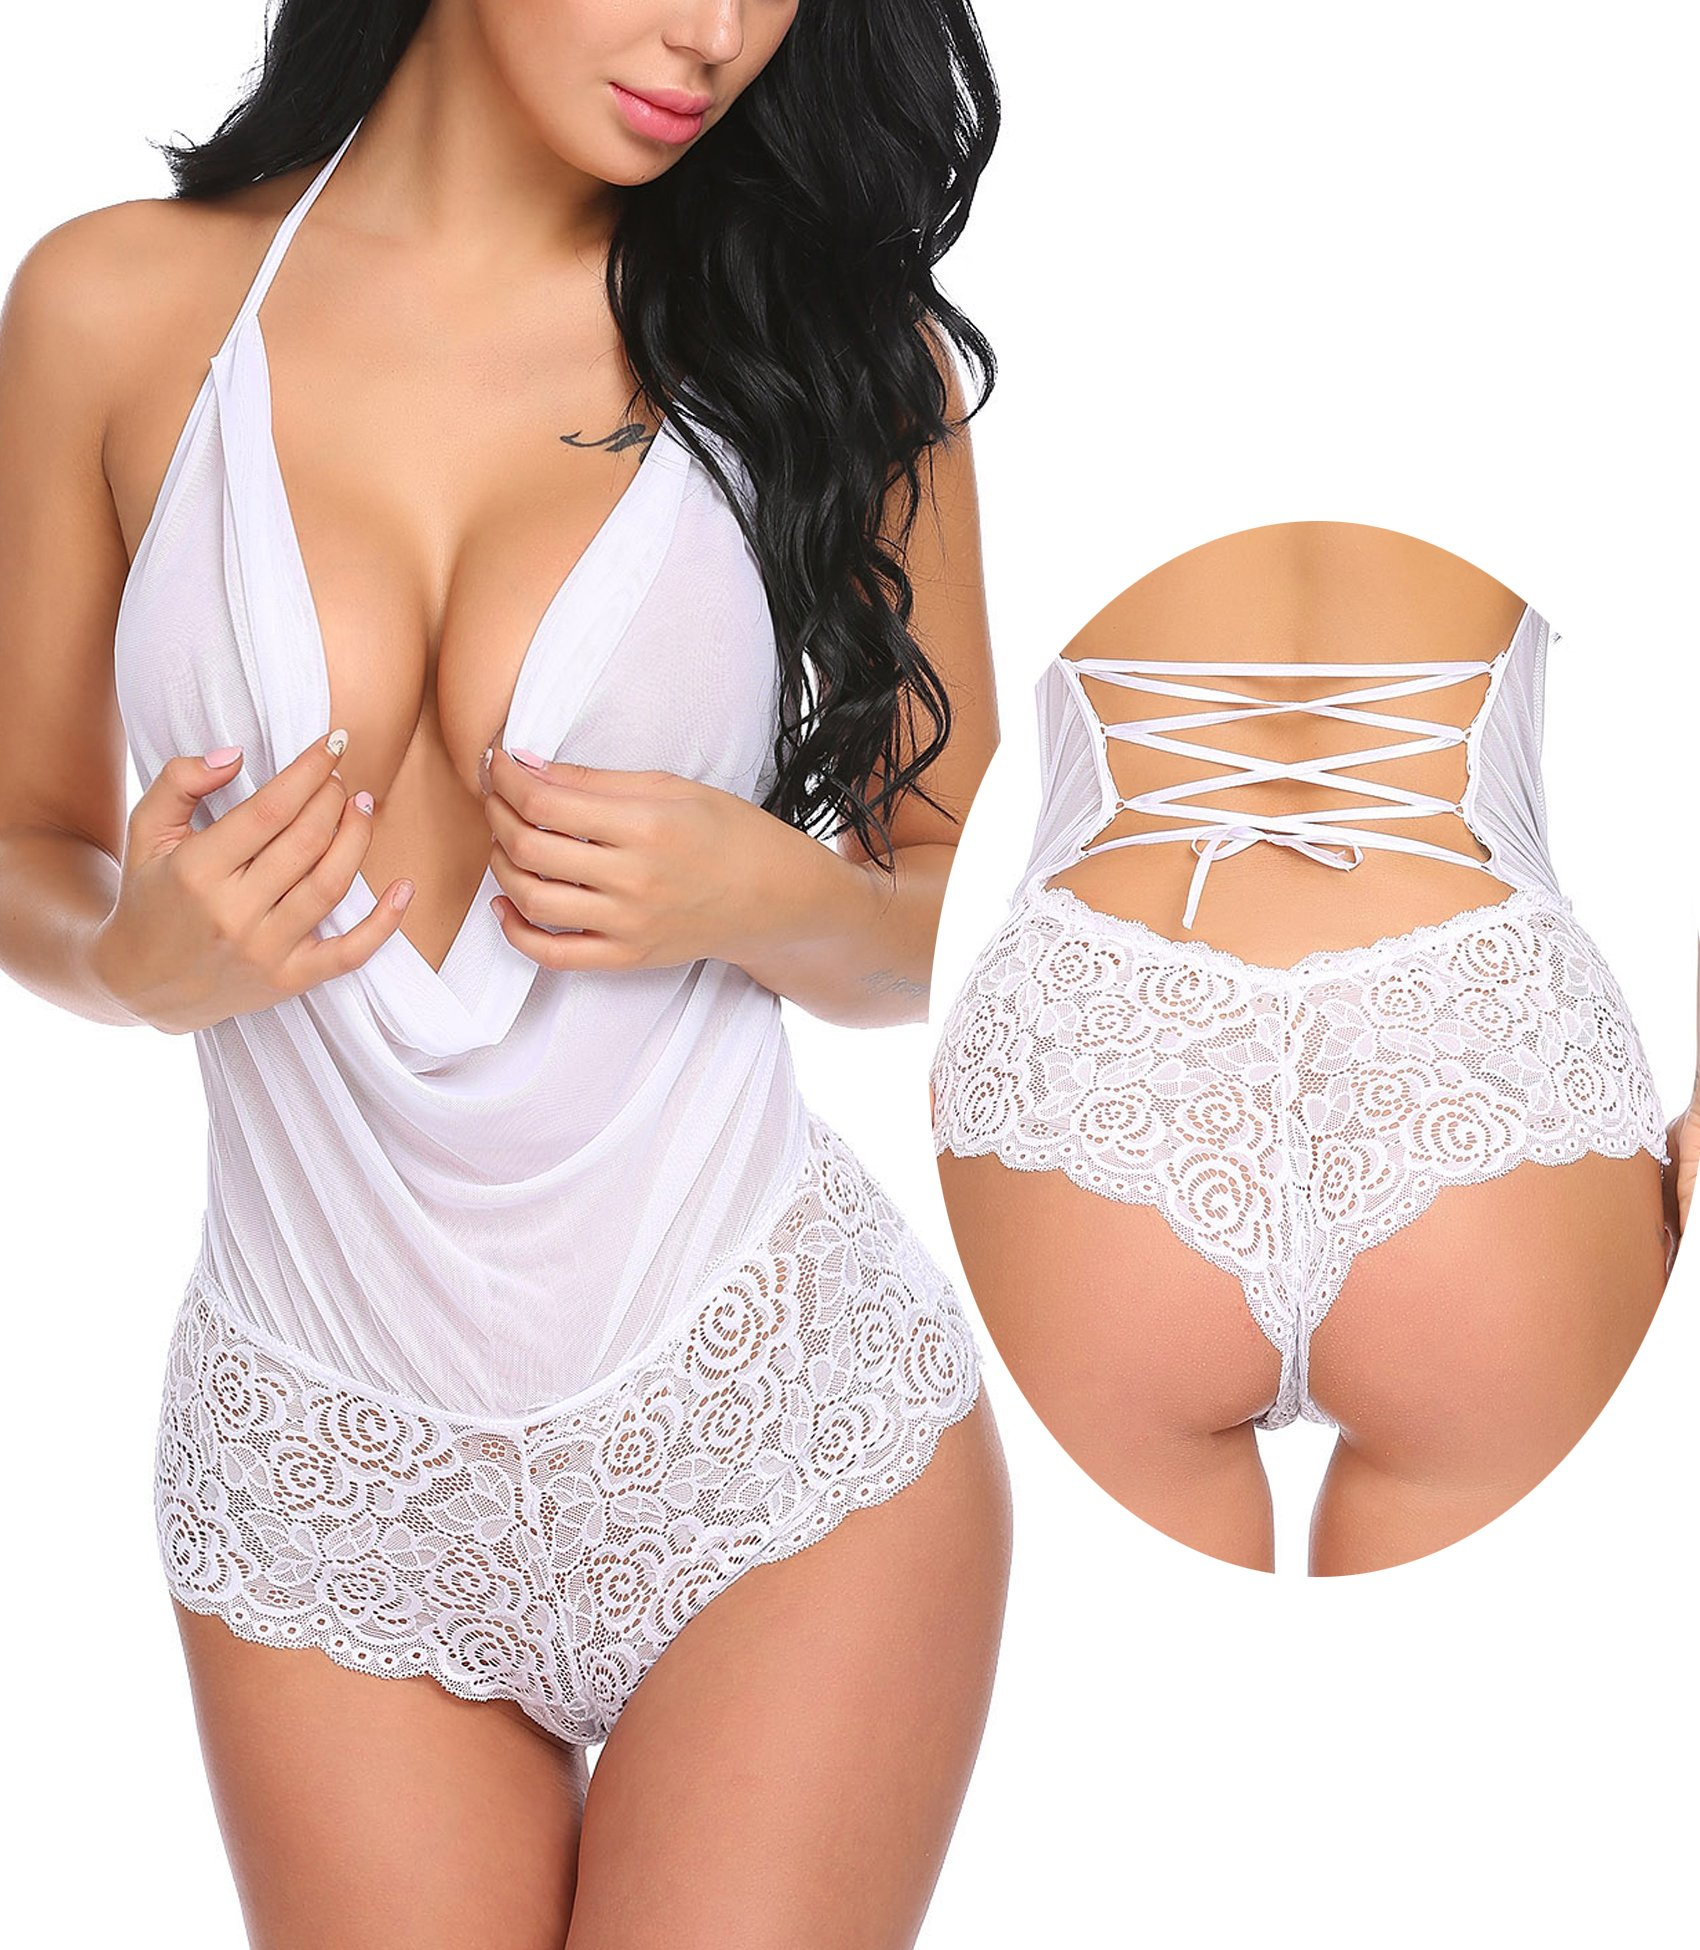 Avidlove Women Sexy Lingerie Teddy One Piece Lace Halter Babydoll Bodysuit White S